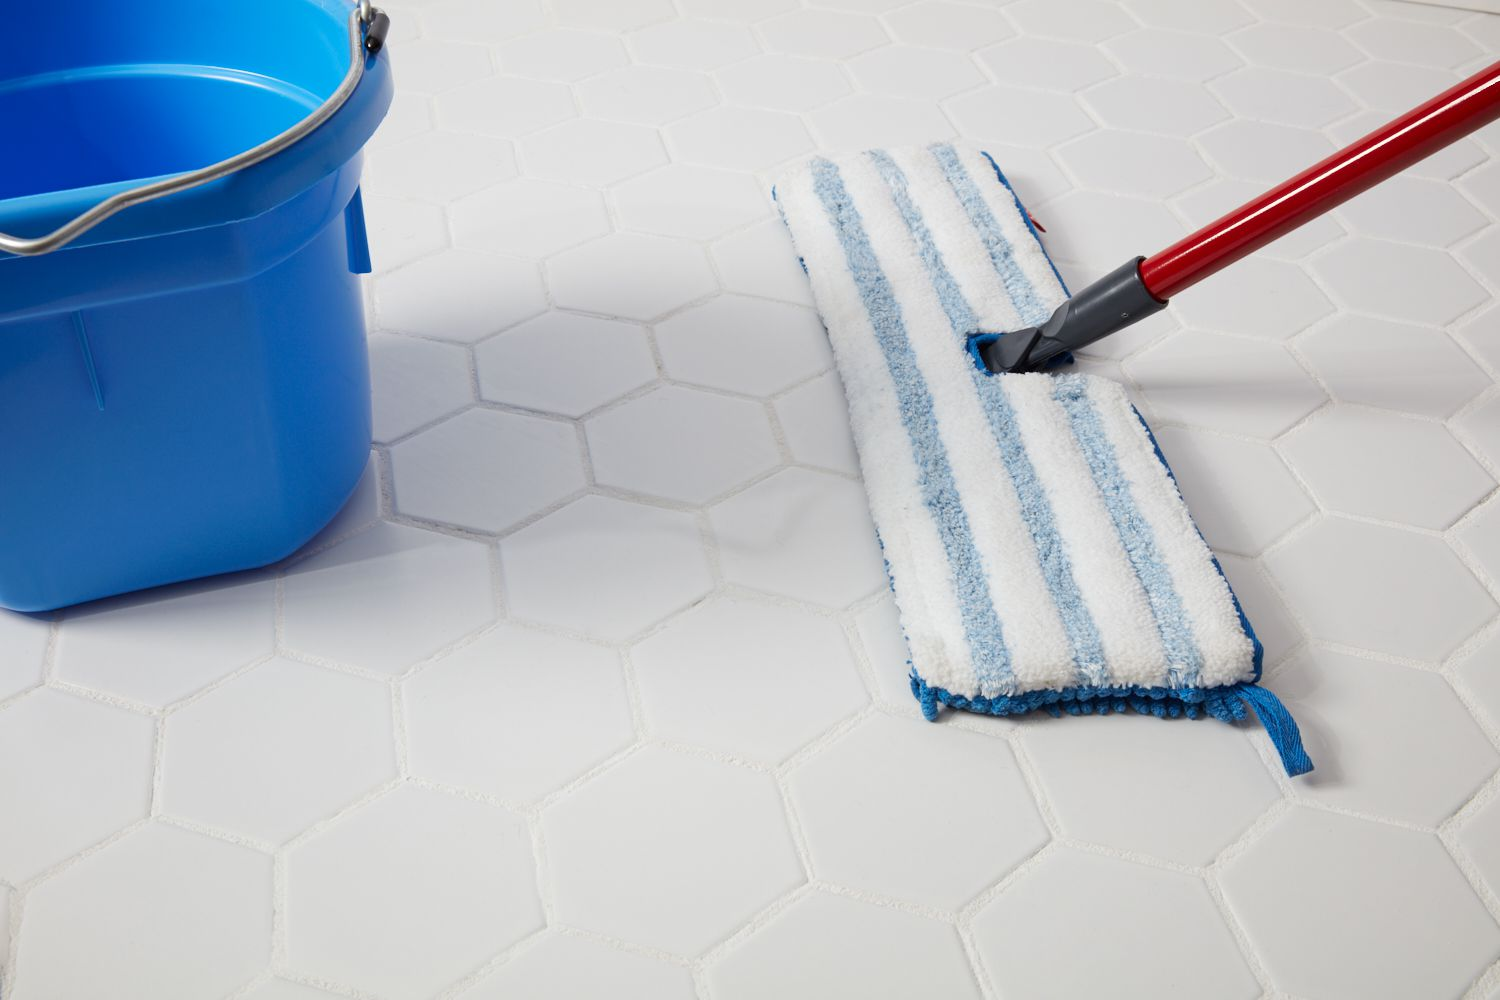 How to Clean Porcelain Floor Tiles